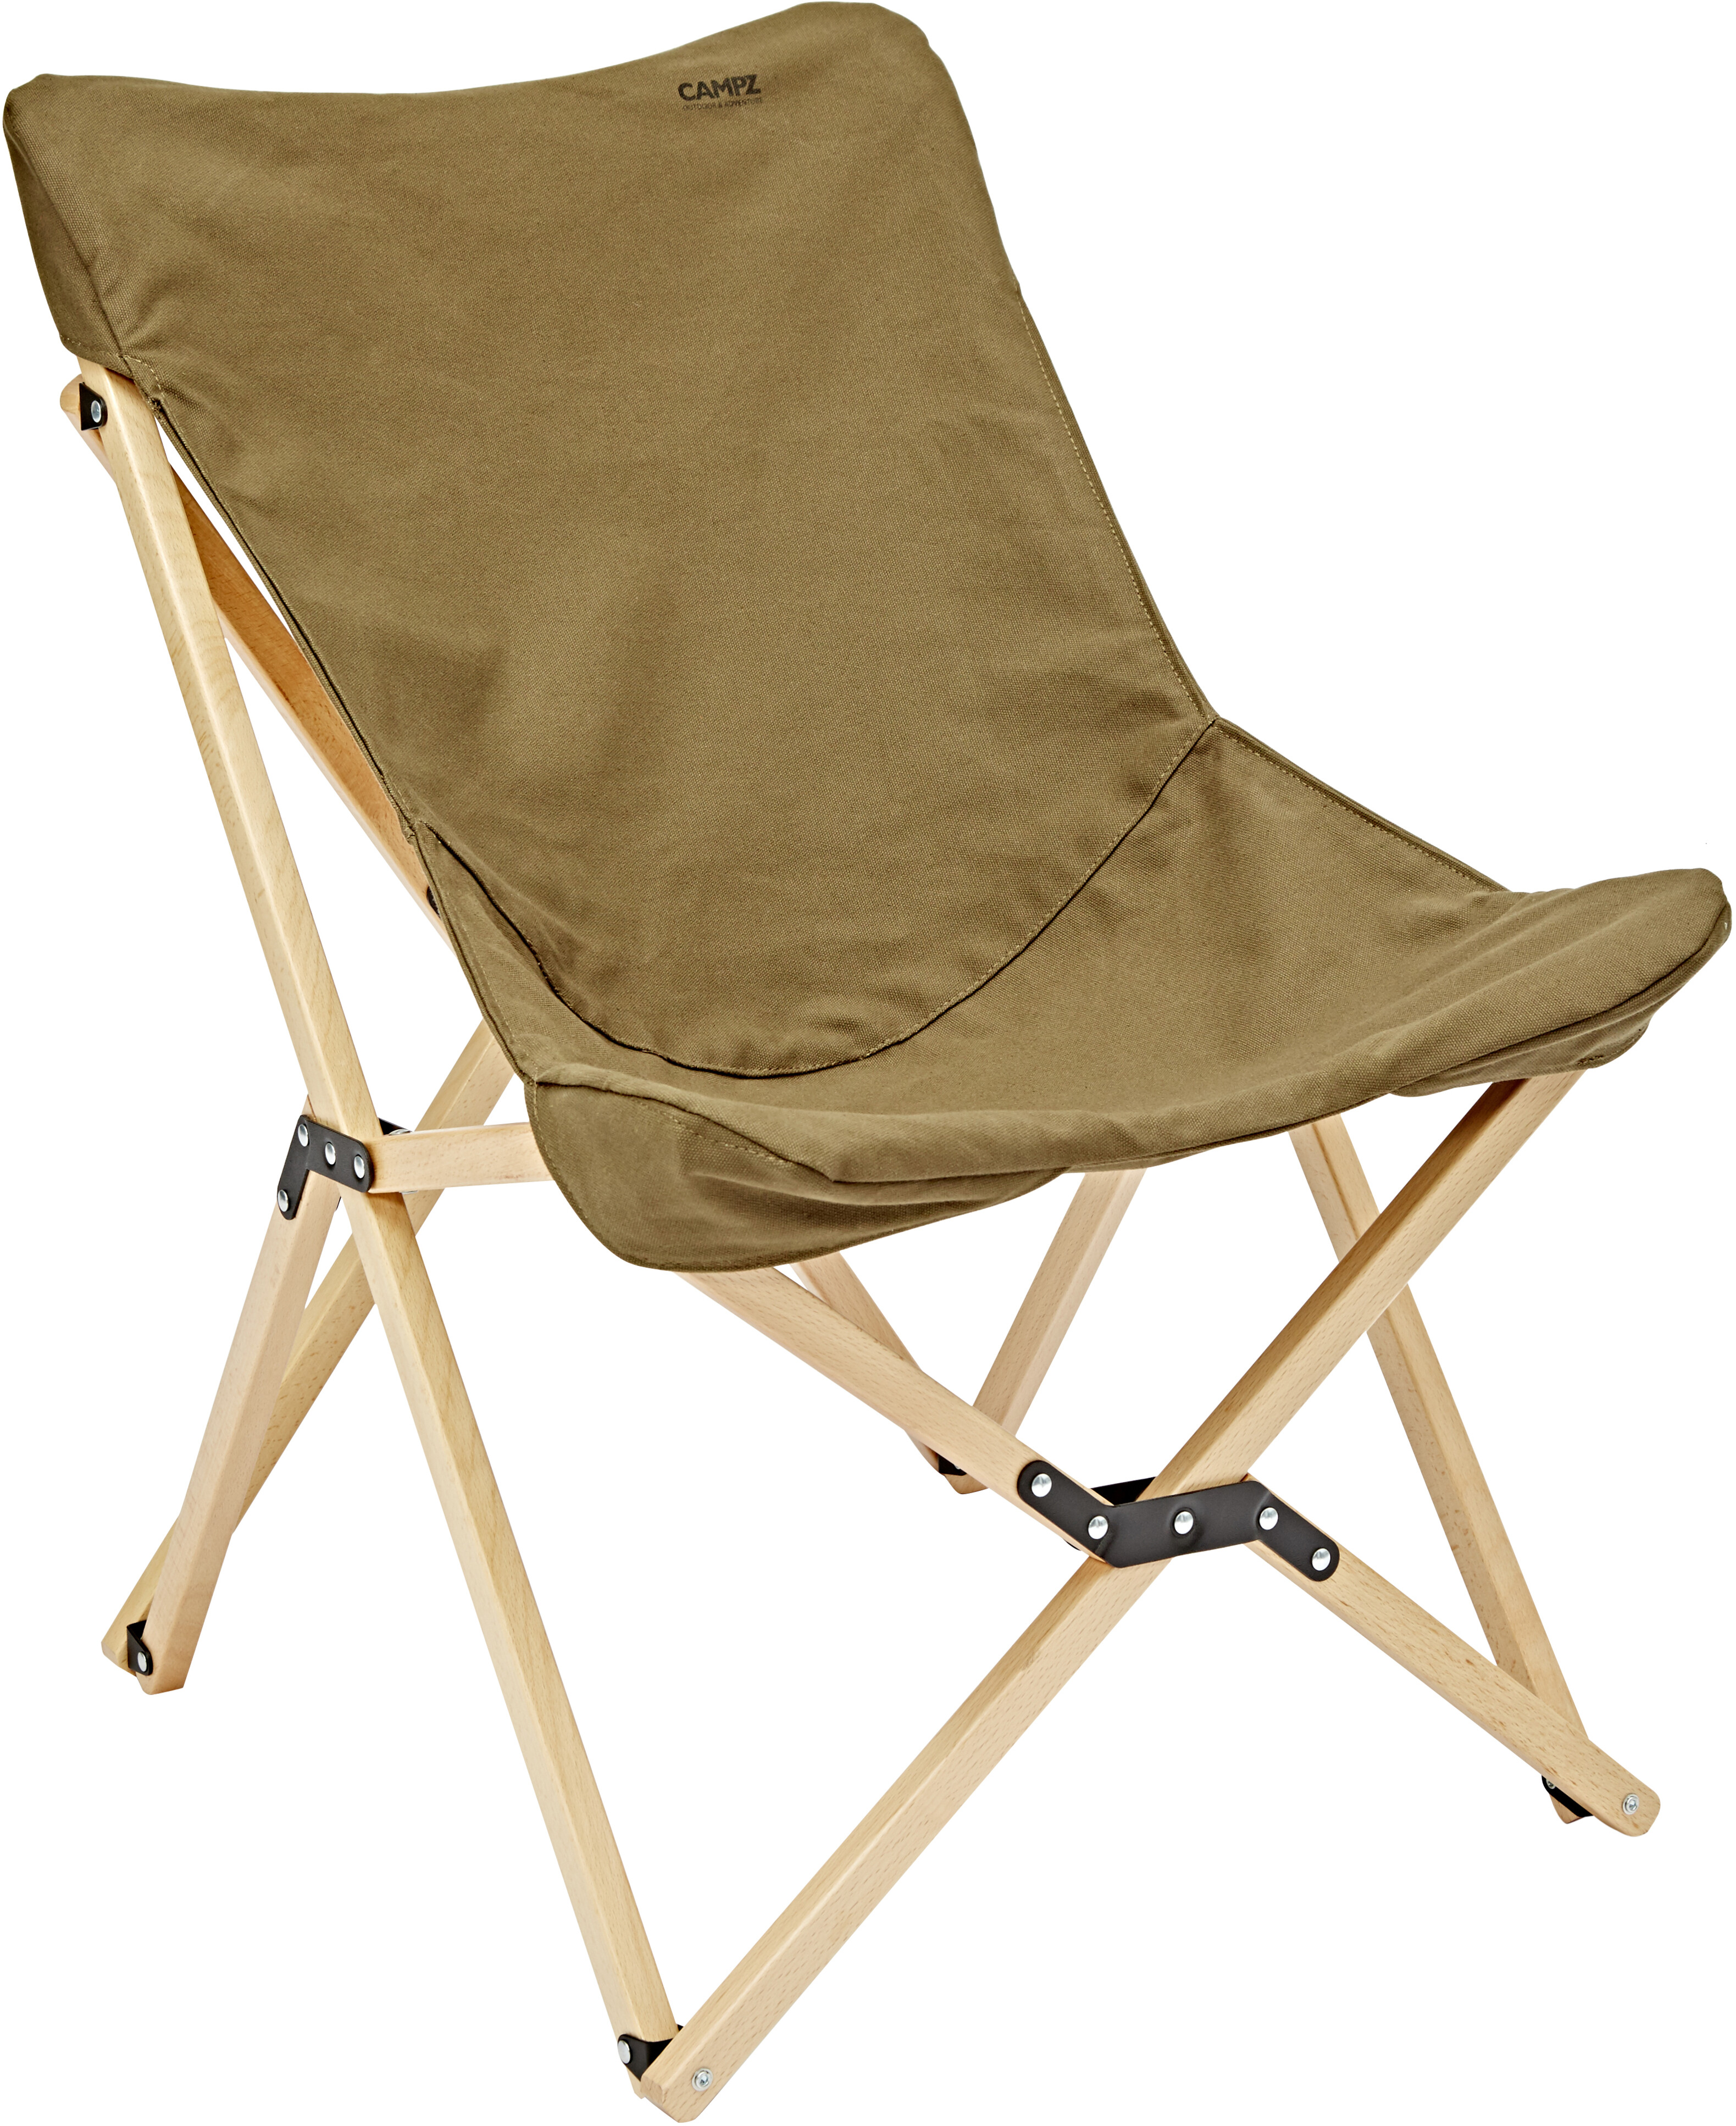 CAMPZ Beech Wood Folding Chair Brown At Addnature